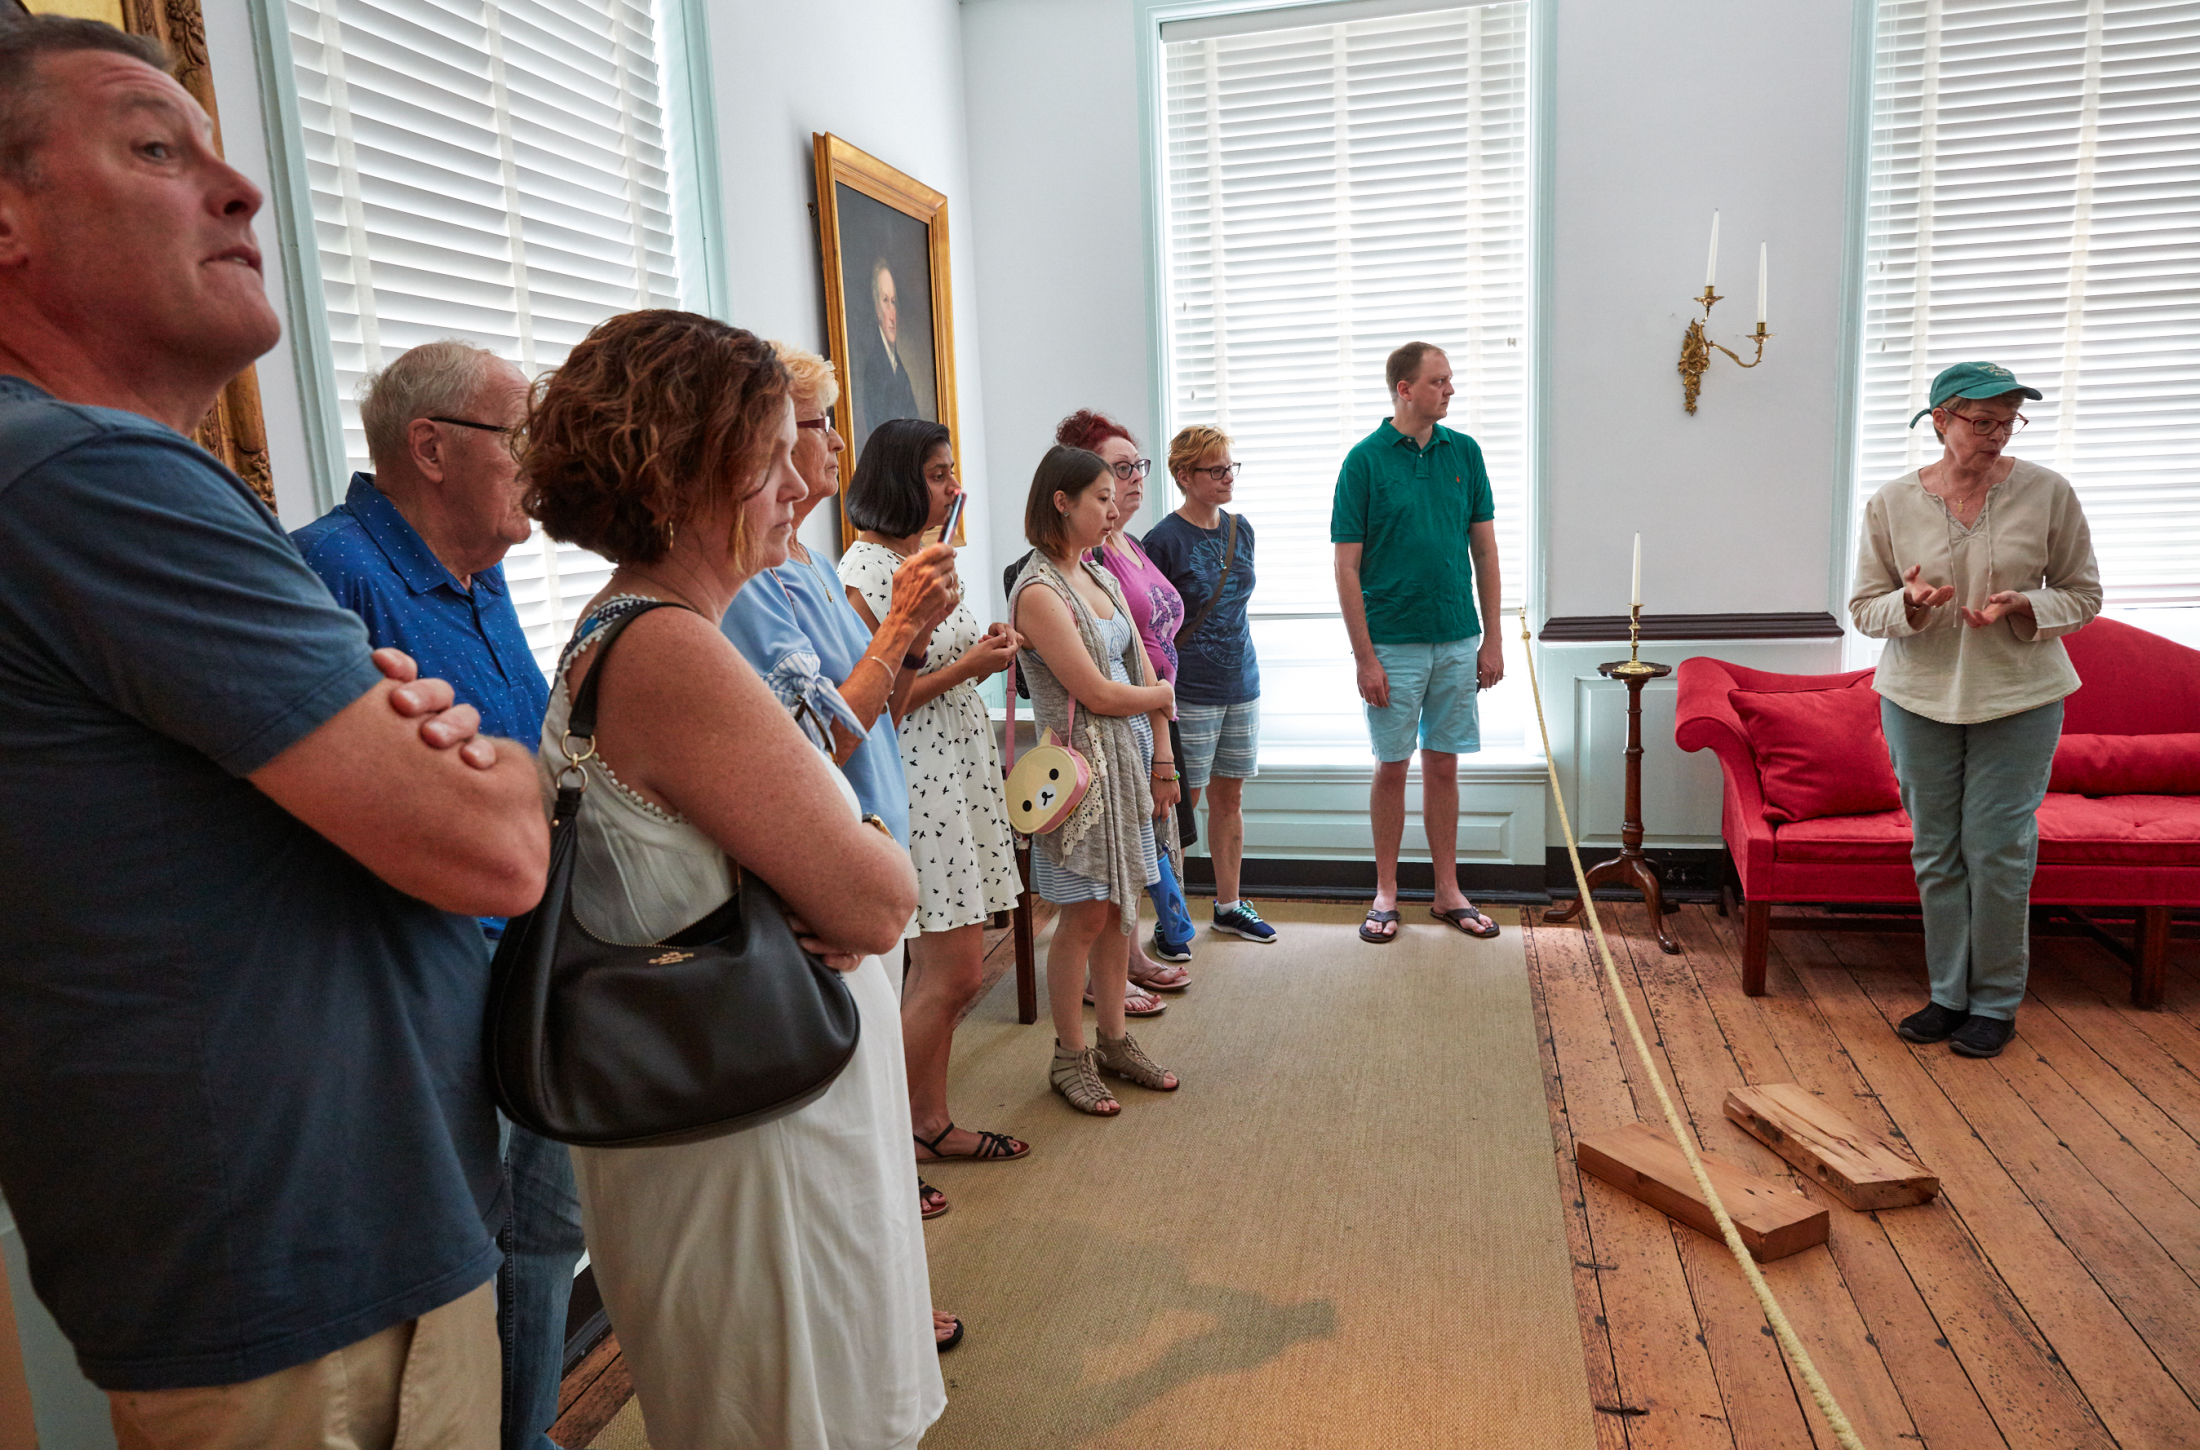 Art and Documentary Photography - Loading 04-08-18_WoodfordMansion-PeachFestival_152.png